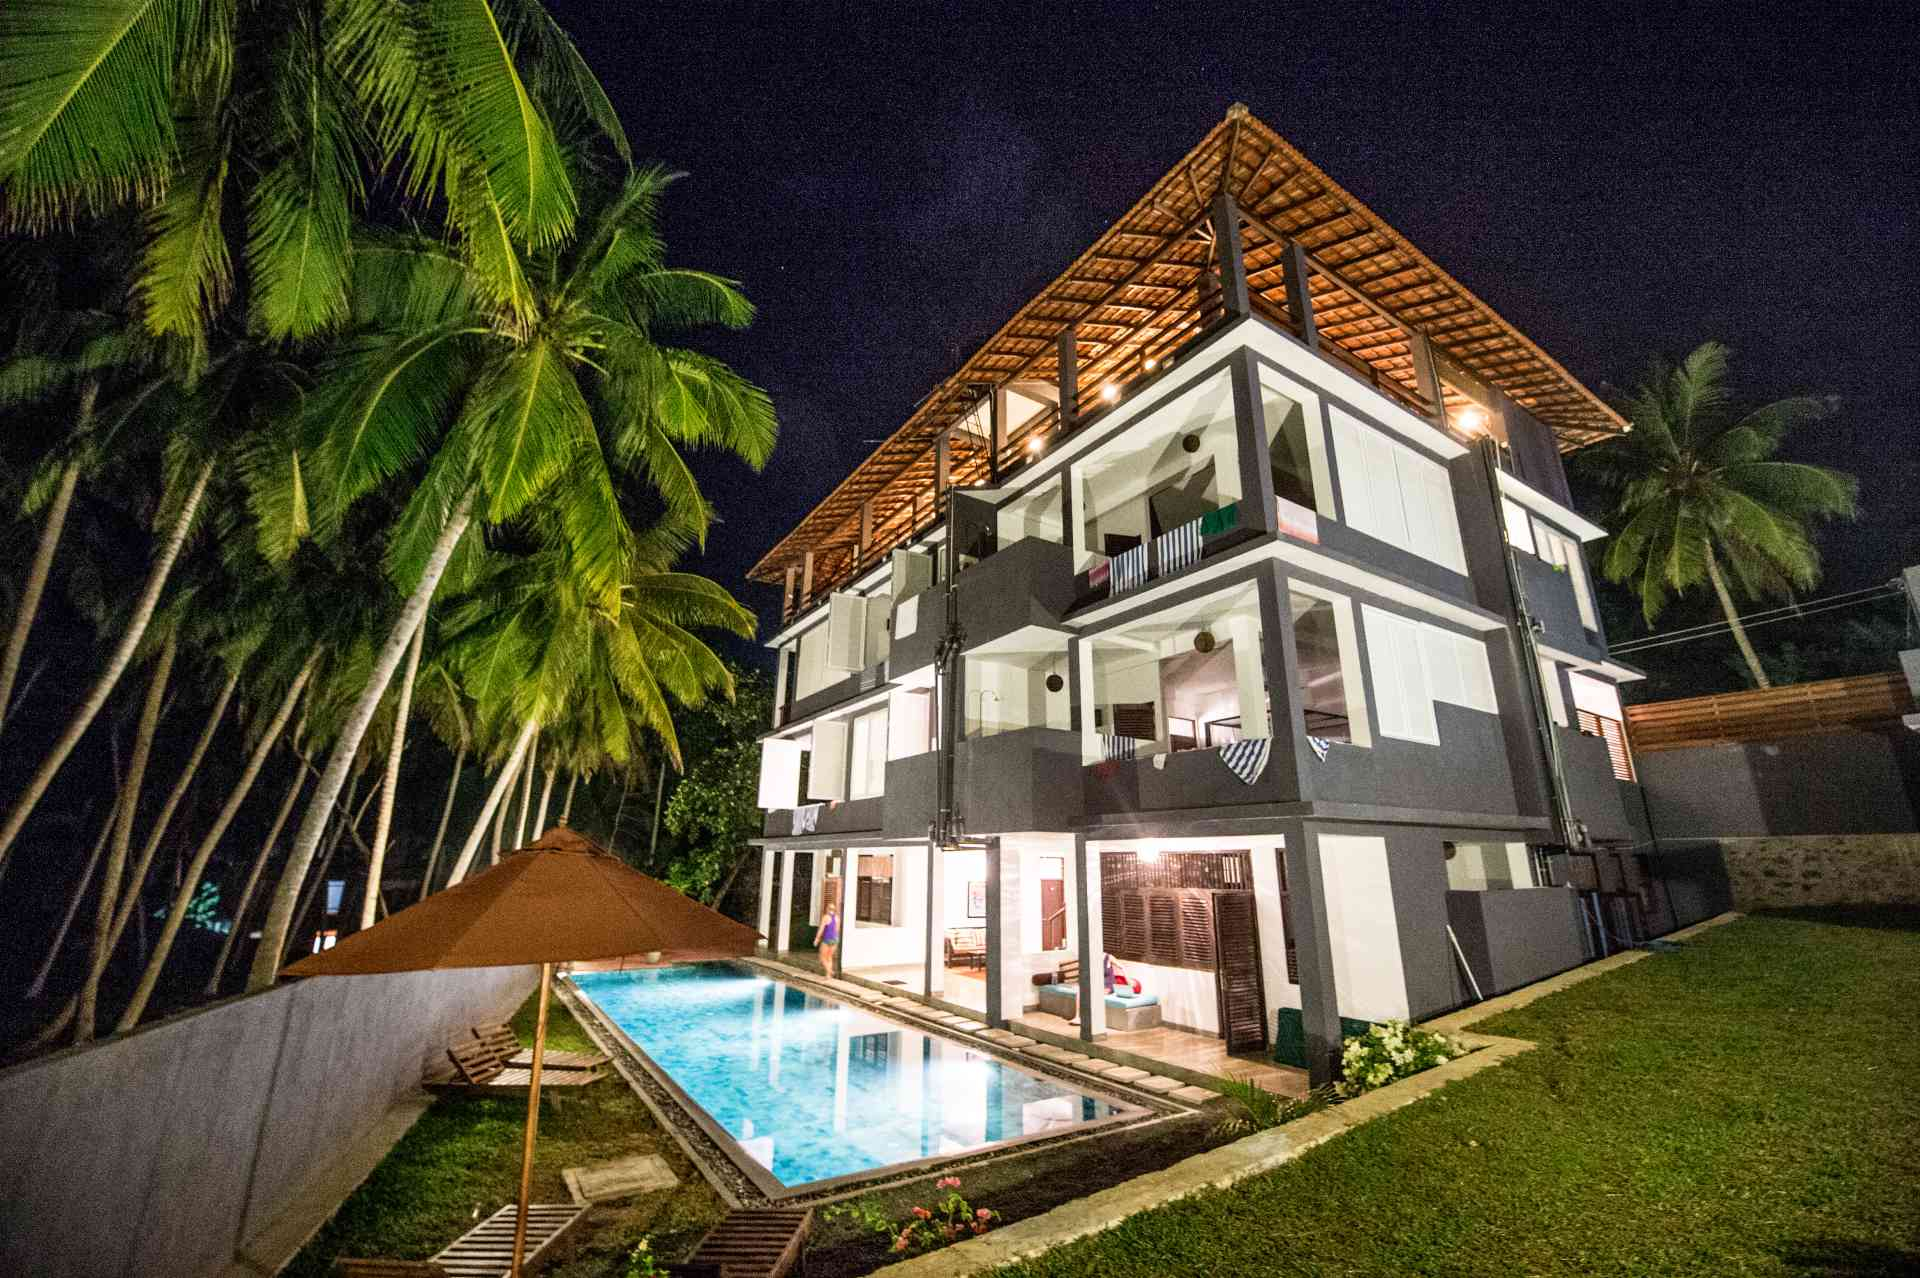 Sri-Lanka-Jasper-house-exterior-veiw-pool-lights-at-night